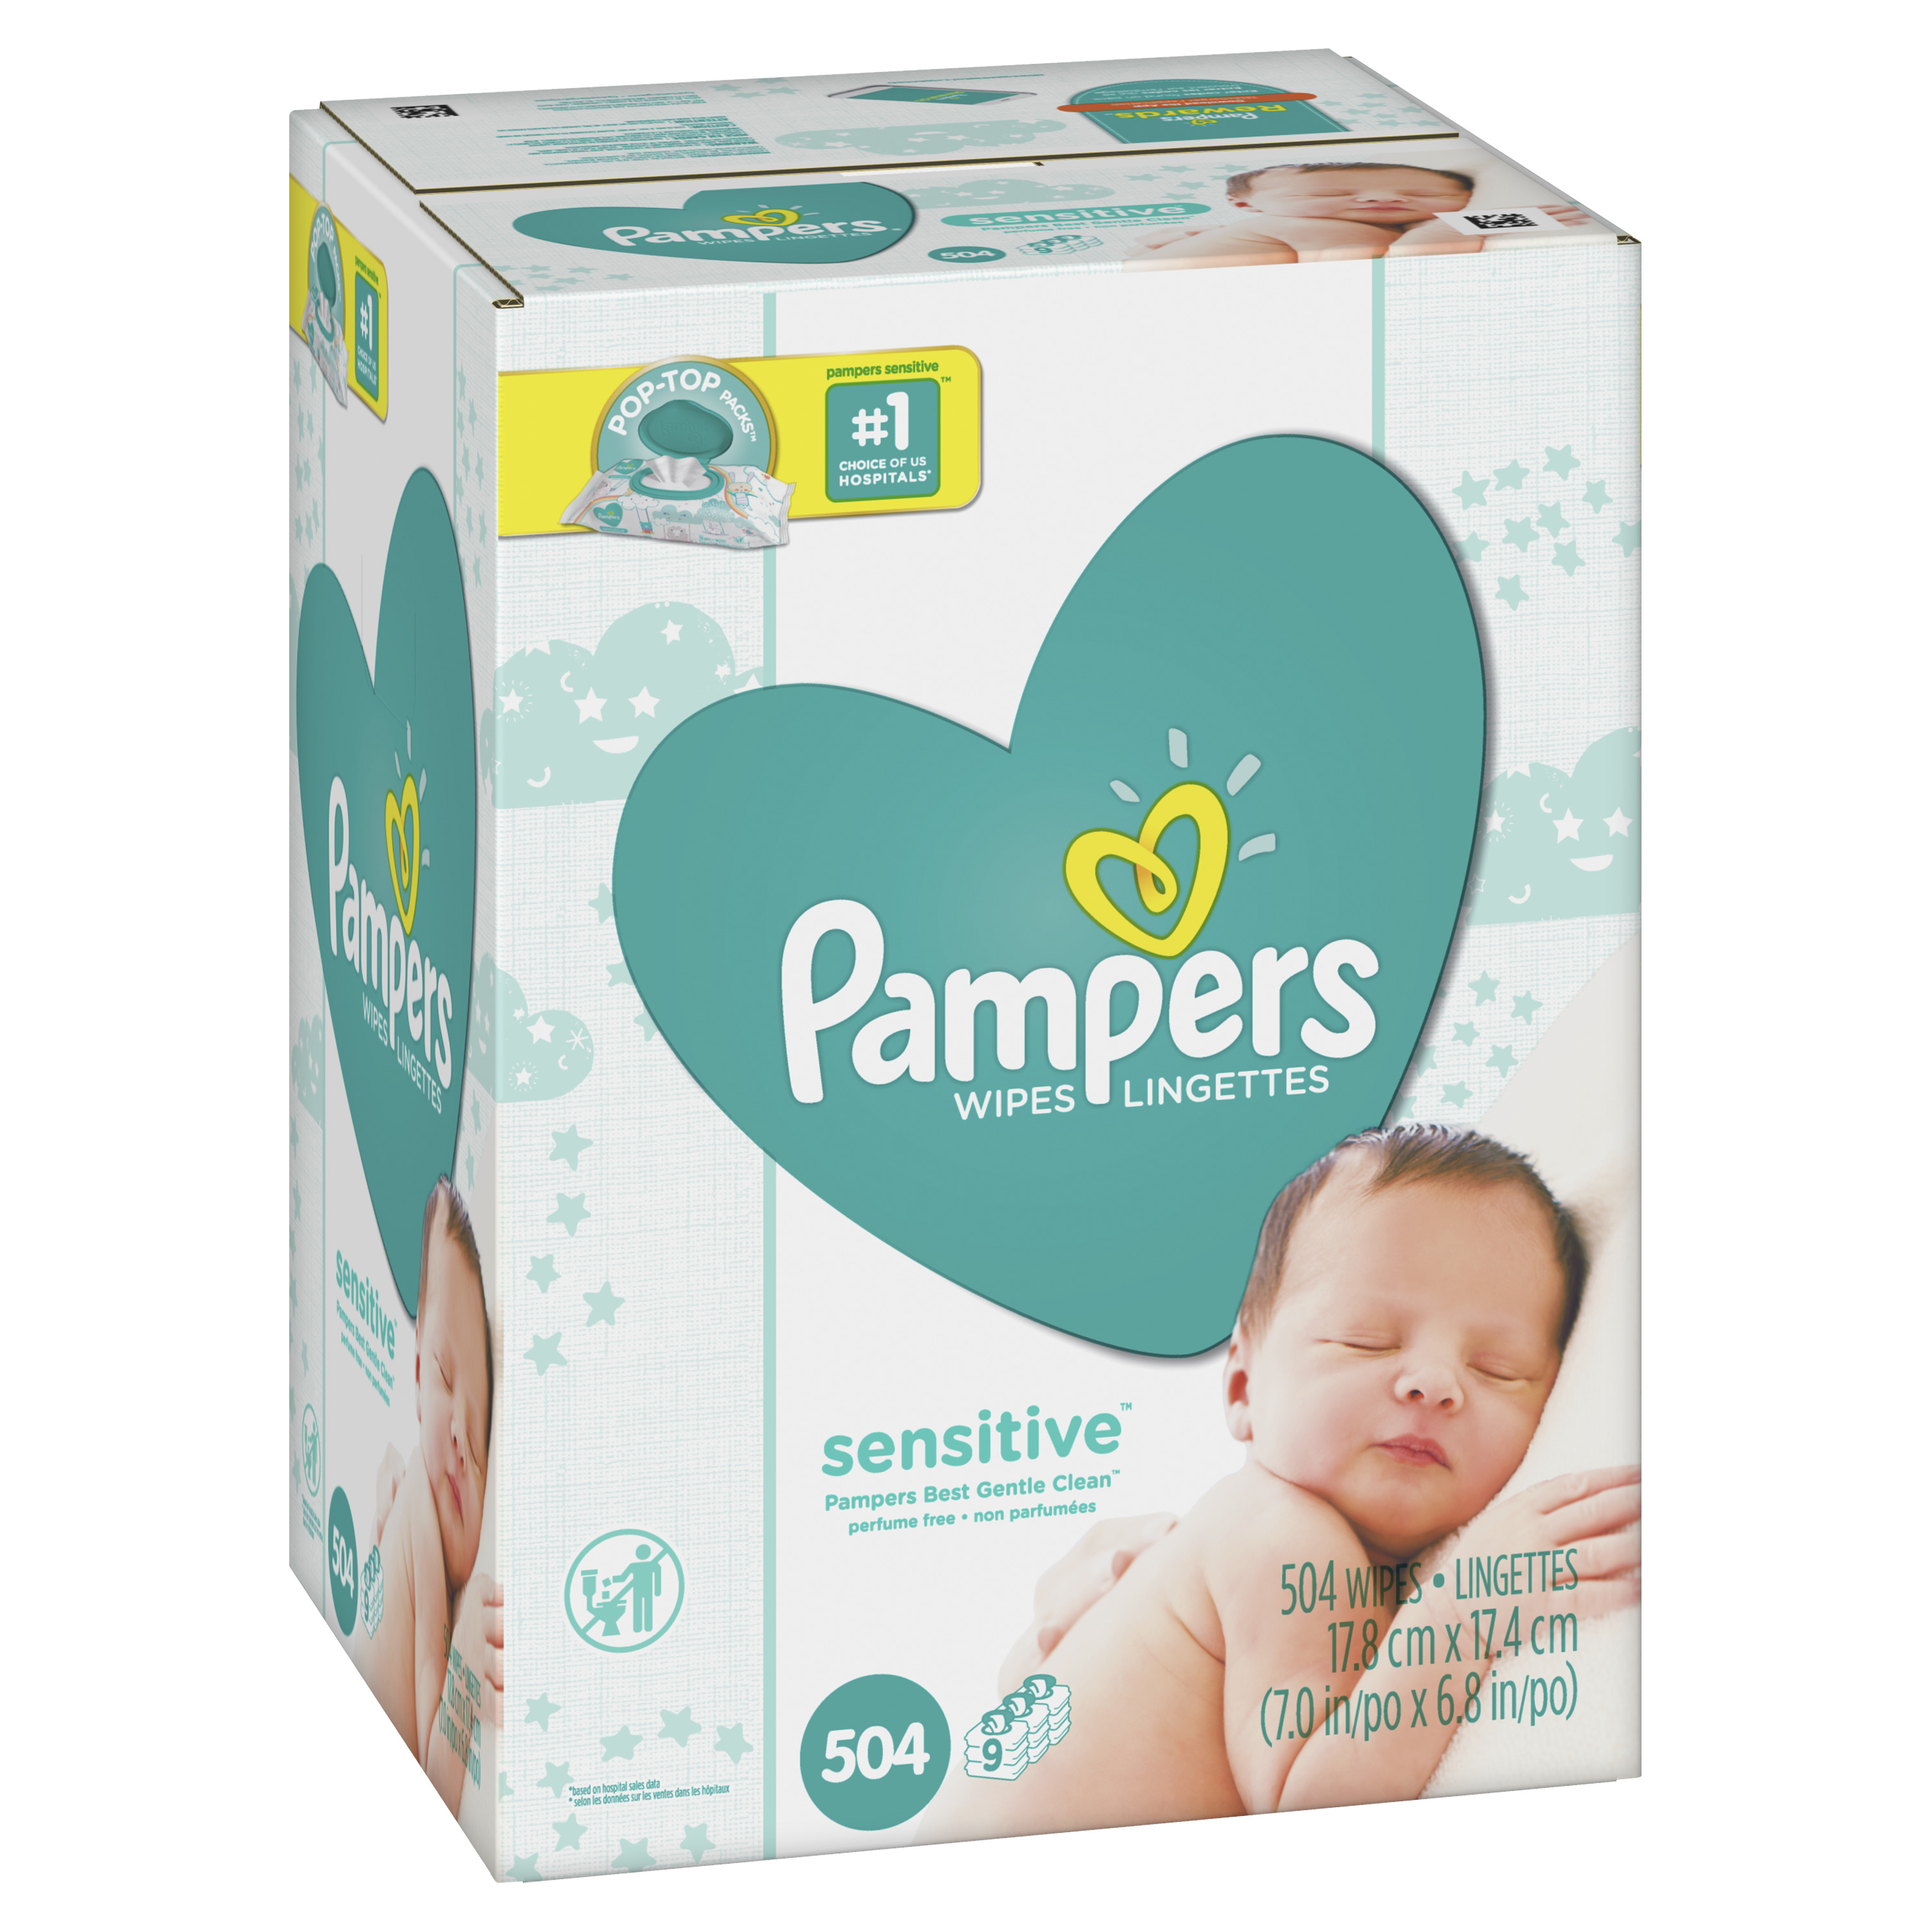 Pampers Baby Wipes, Sensitive, 9X Pop-Top Packs, 504 Count